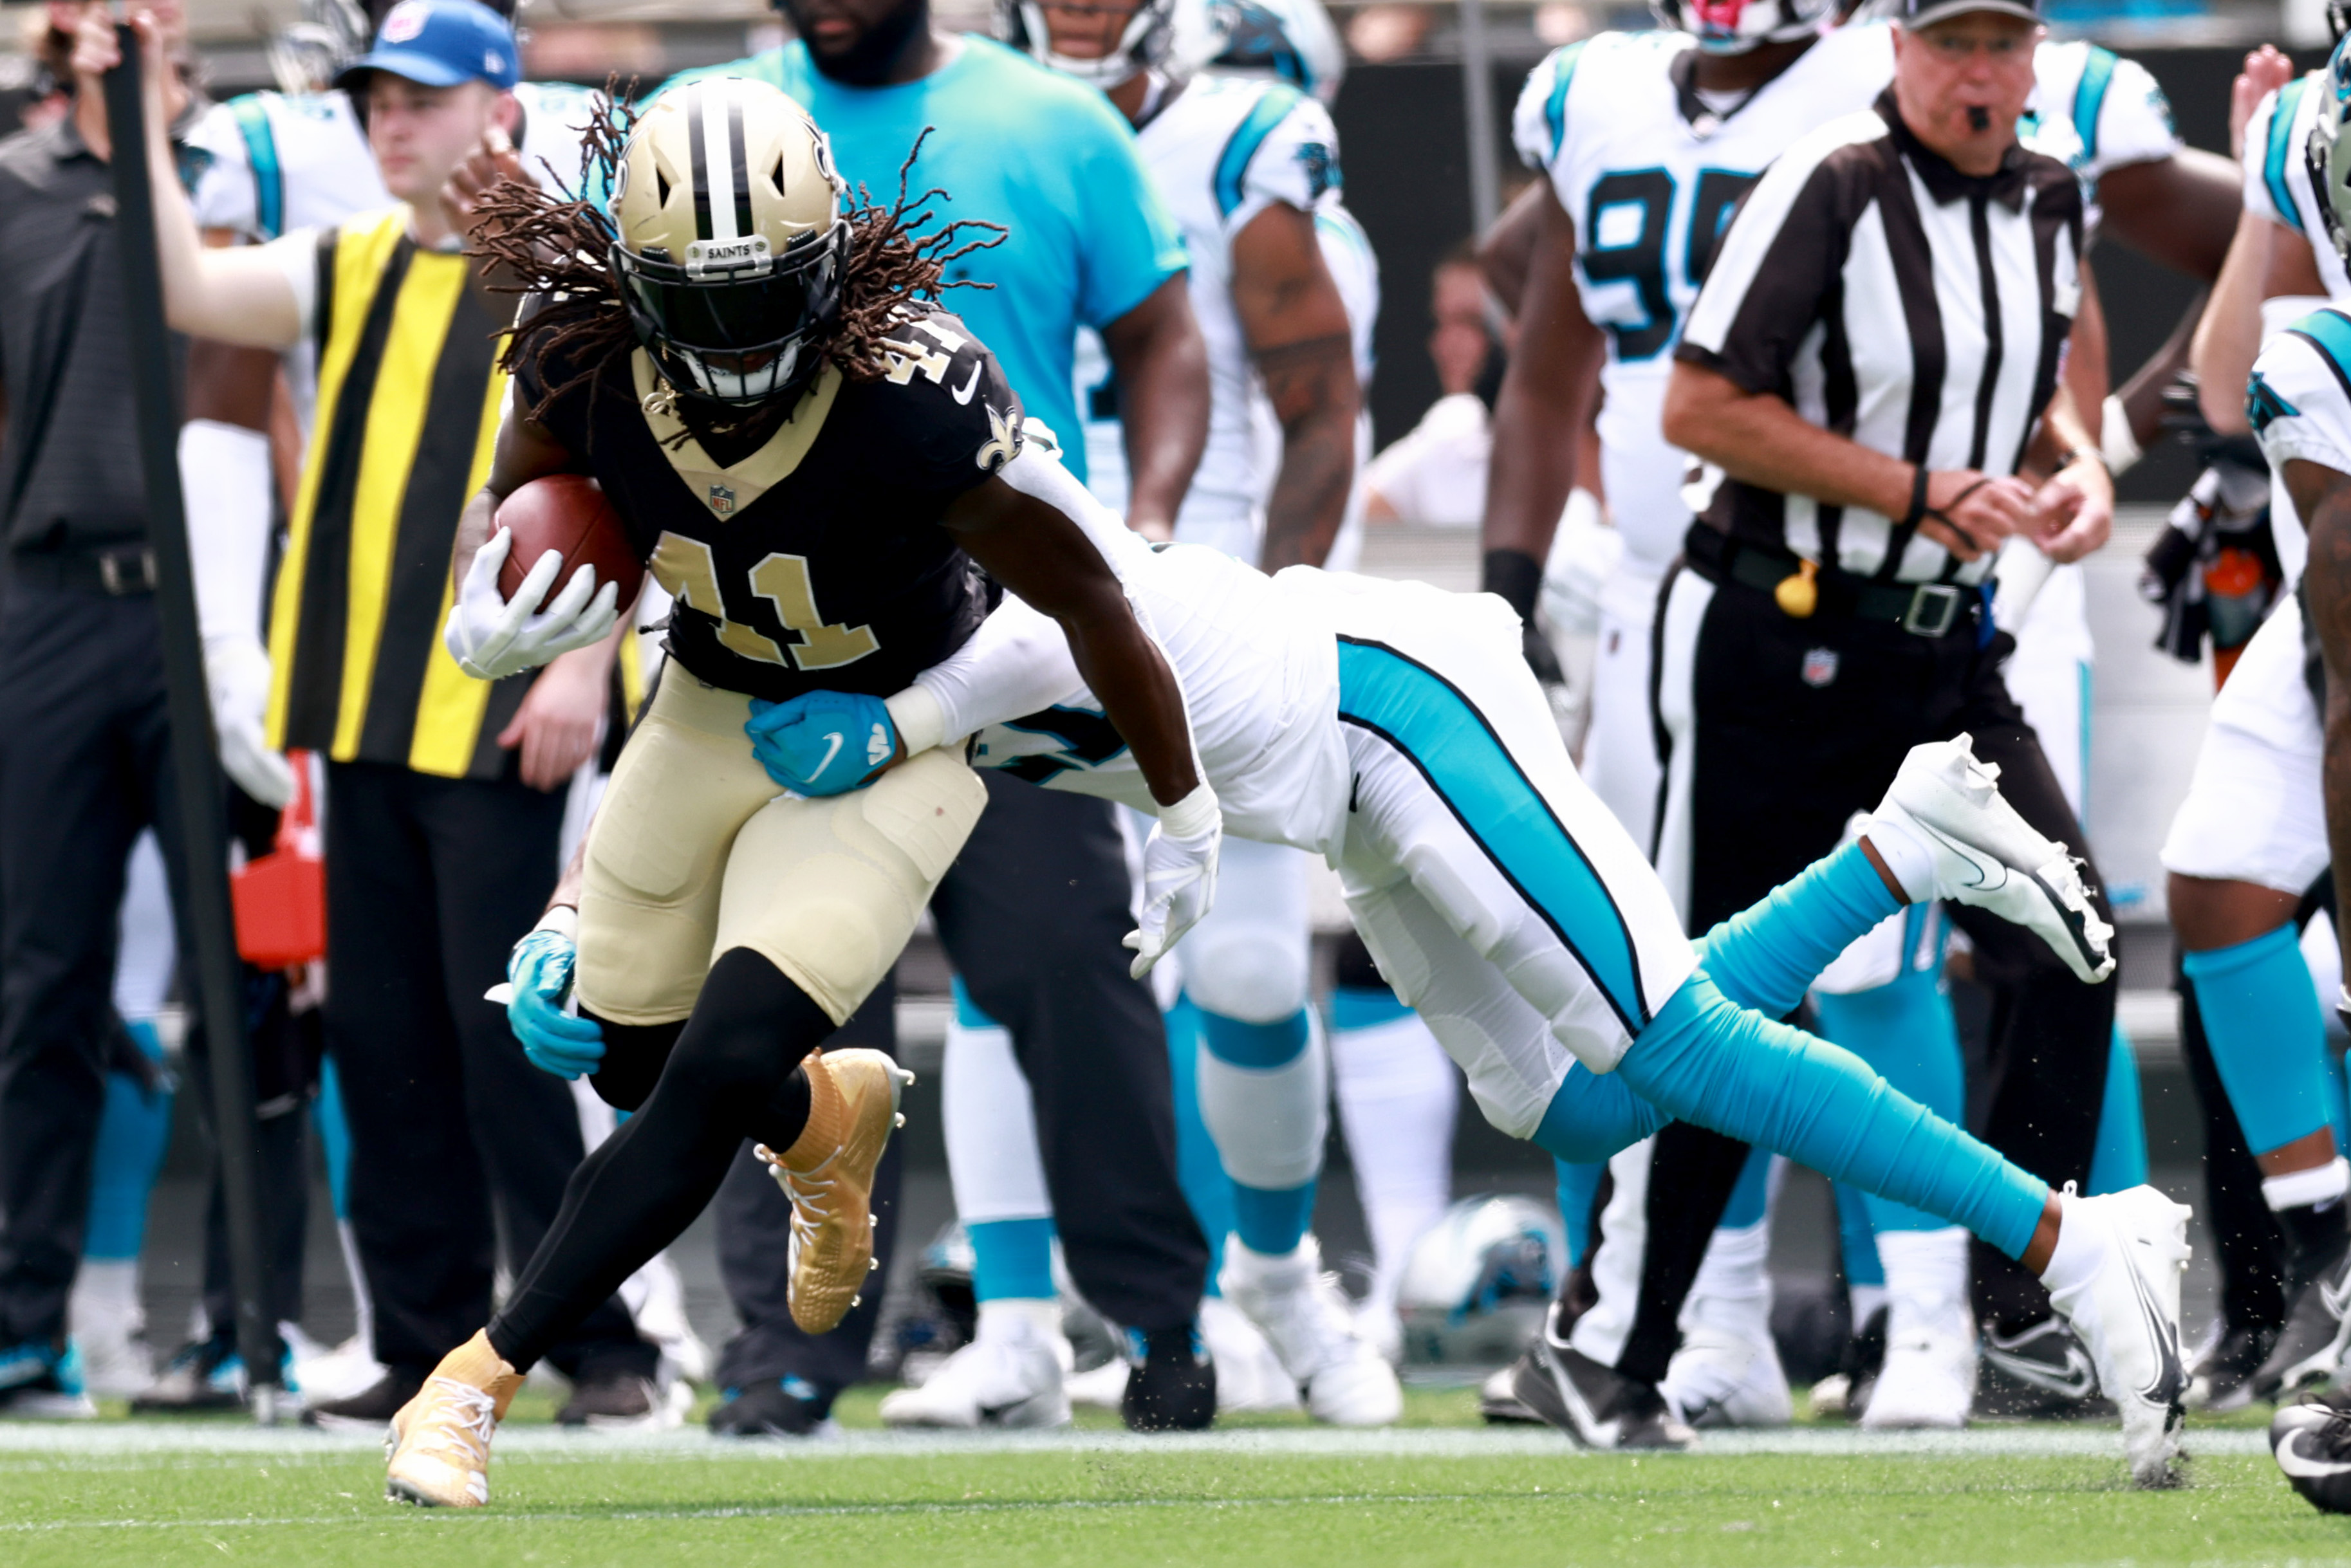 Running back Alvin Kamara #41 of the New Orleans Saints runs the ball during the first half in the game against the Carolina Panthers at Bank of America Stadium on September 19, 2021 in Charlotte, North Carolina.